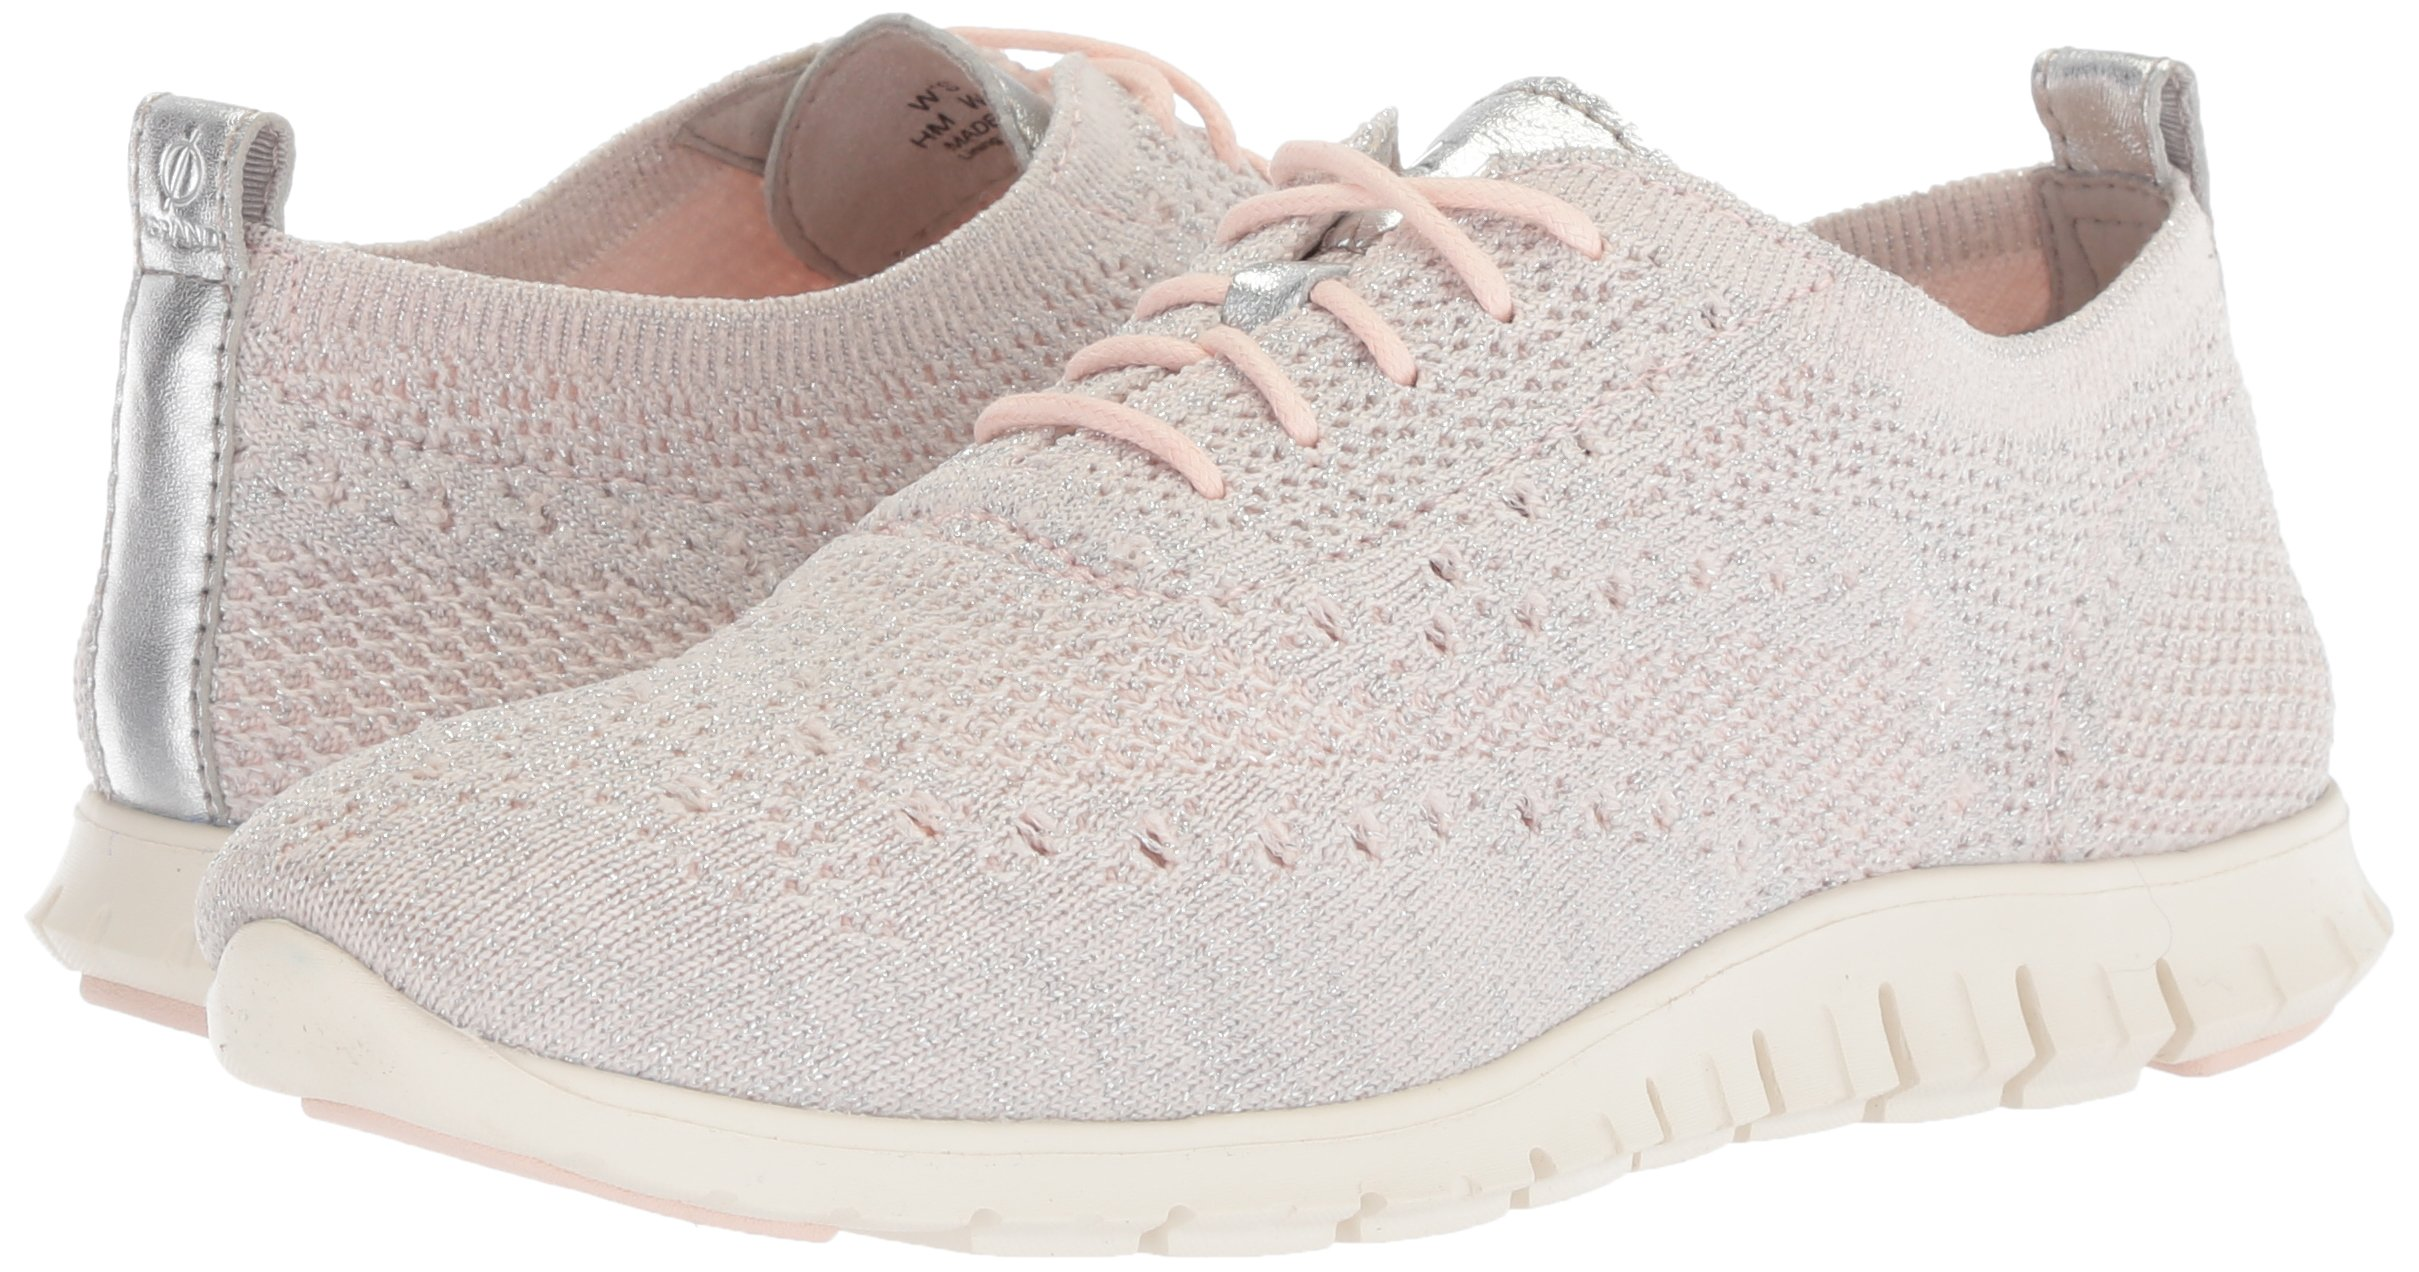 Cole Haan Women's Zerogrand Stitchlite Oxford, Peach Blush, 8.5 B US by Cole Haan (Image #6)